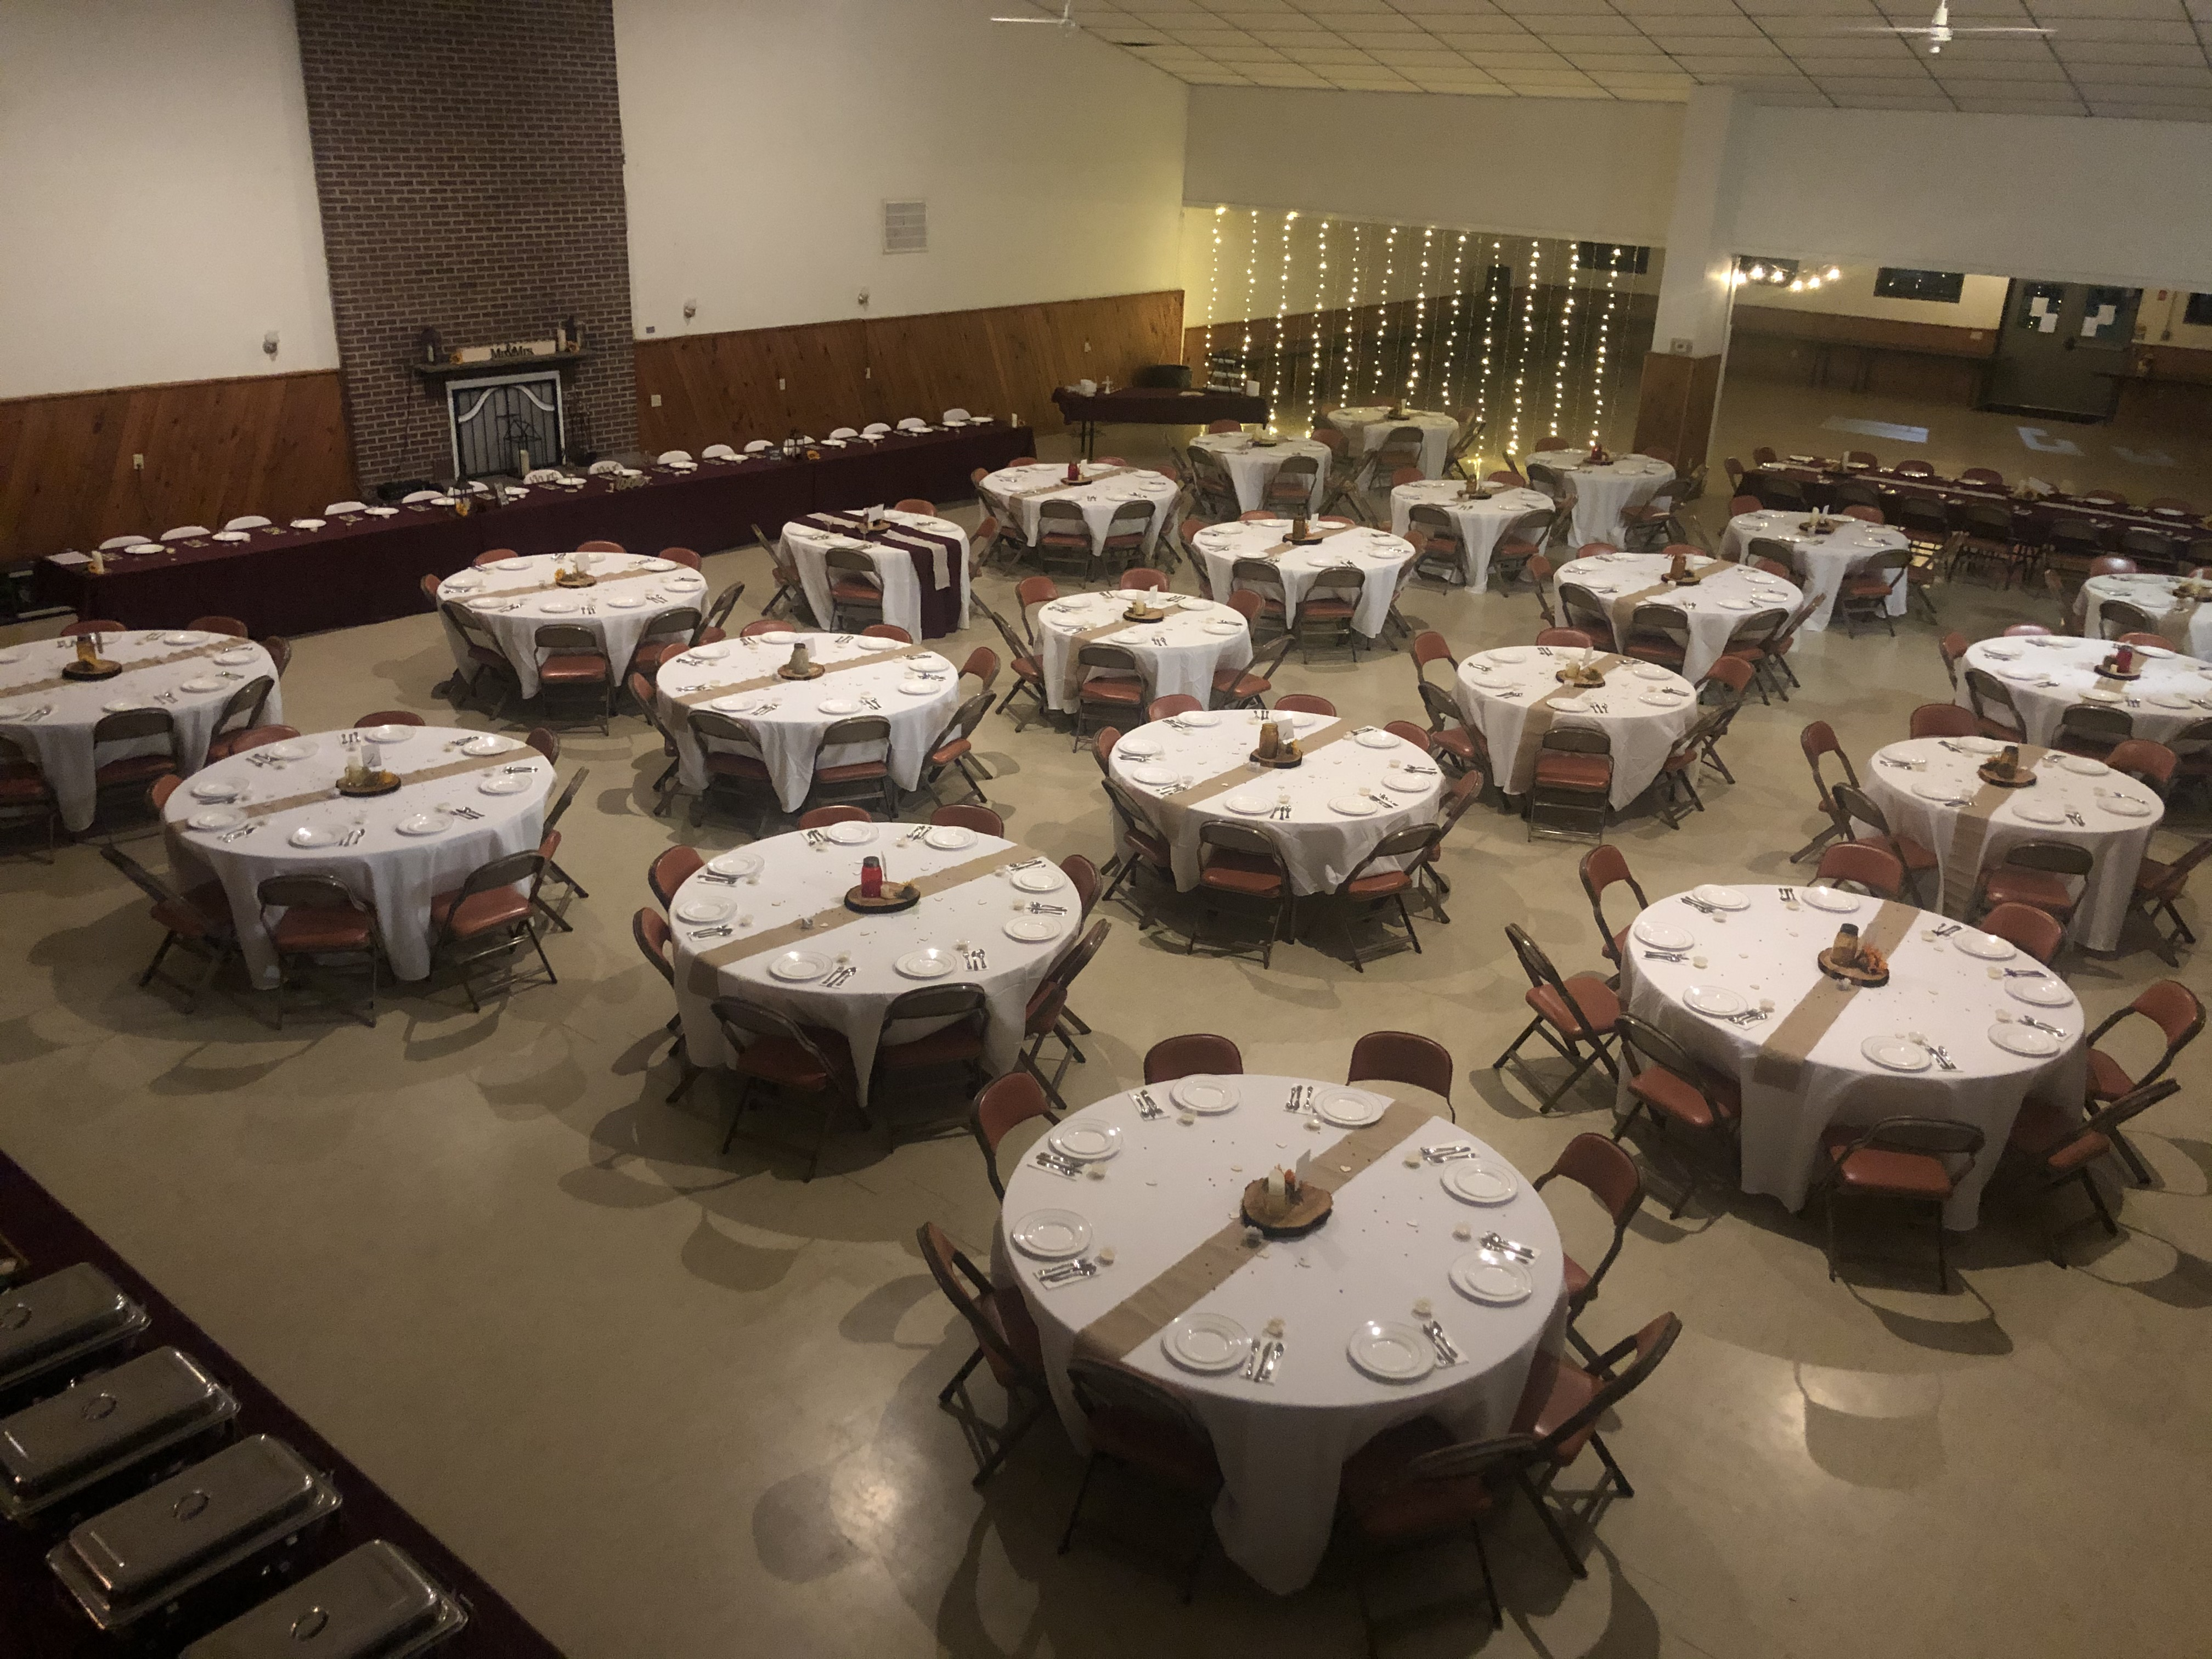 Main Lodge set up for an event